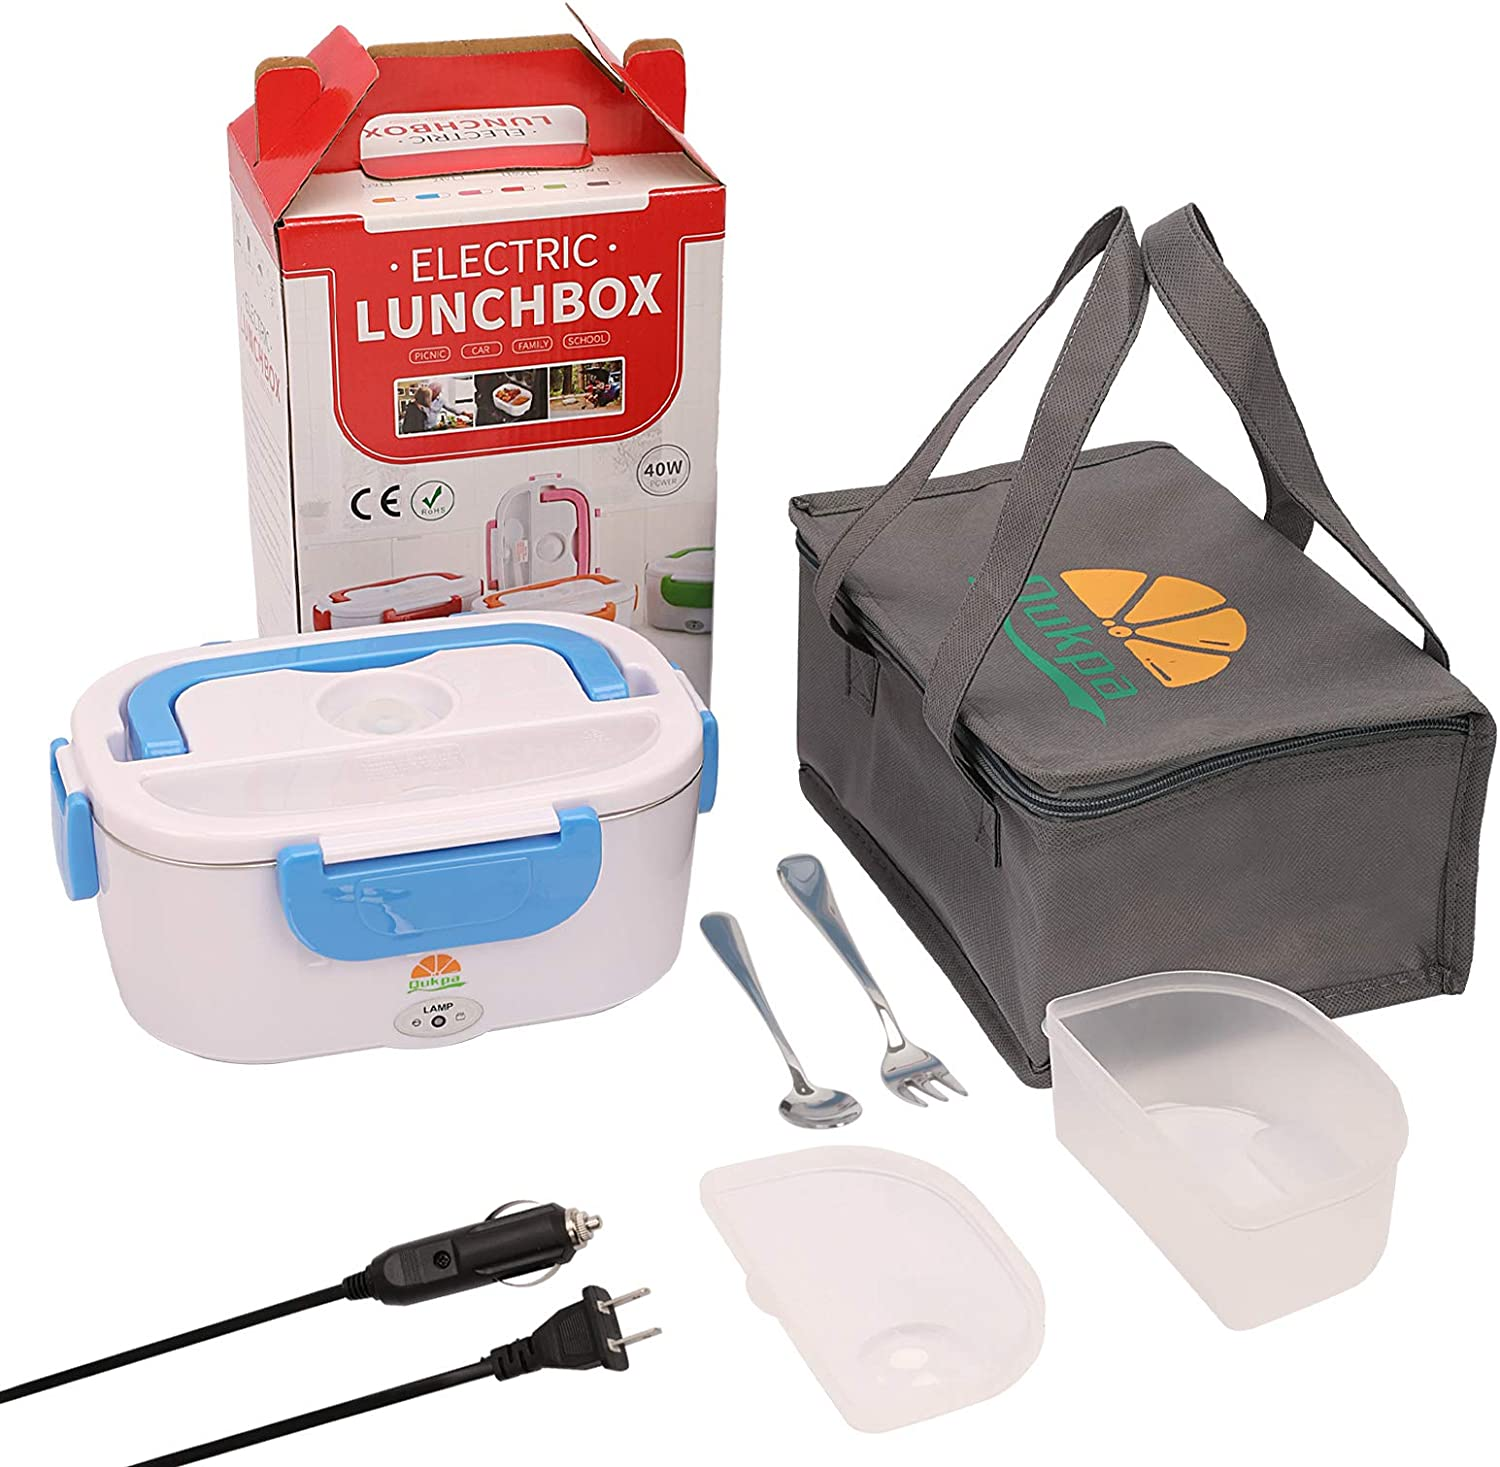 Electric Lunch Box Food Warmer, Car & Home Portable Food Heater 2 Compartments, 110V & 12V & 24V 3 in 1 Mini Lunchbox with 304 Stainless Steel Fork & Spoon and Carry Bag